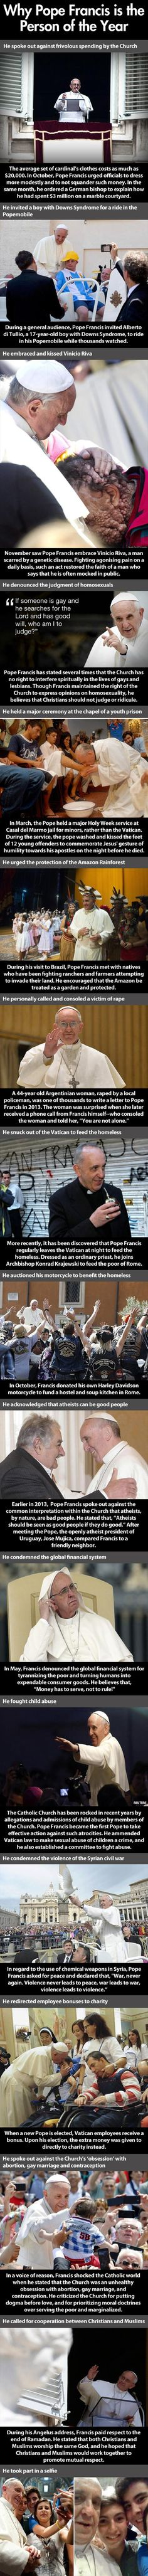 I'm not Religious, but I think Pope Francis is wonderful! This is what religion should stand for Faith In Humanity Restored – 25 Pics Religion, Papa Francisco Frases, Le Vatican, Robert Downey Jr., Jack Kerouac, Faith In Humanity Restored, All That Matters, Good People, Amazing People